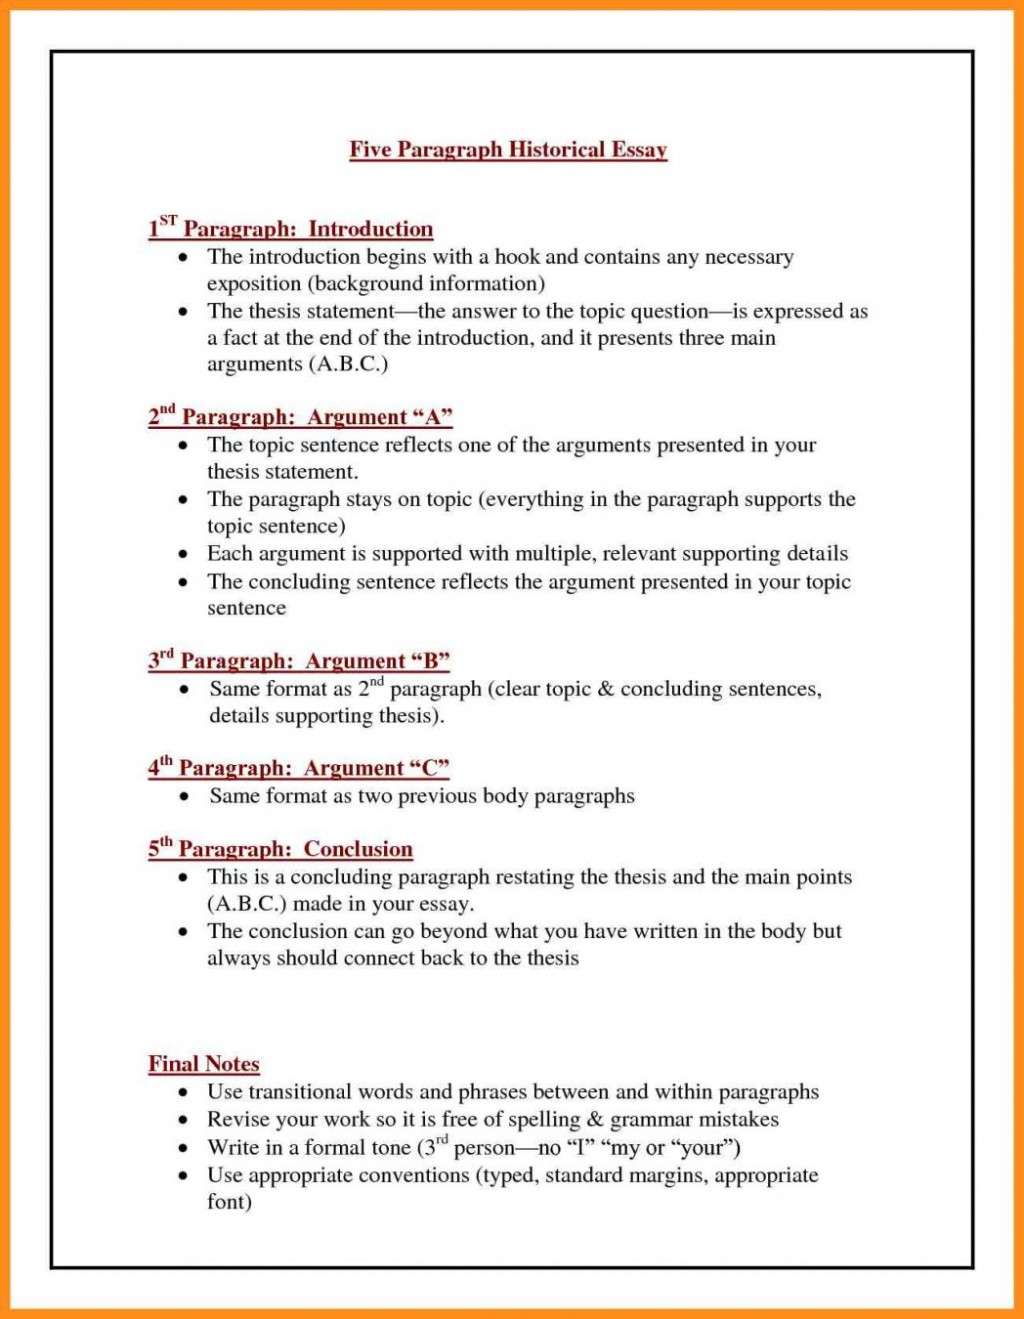 009 How Many Paragraphs Are In Essay Words Introduction Homework Writing Service To Start Off Sentence An Best Ideas Of Sample Five Paragraph Amazing Word Is Par End Formidable A Argumentative Thematic Synthesis Large